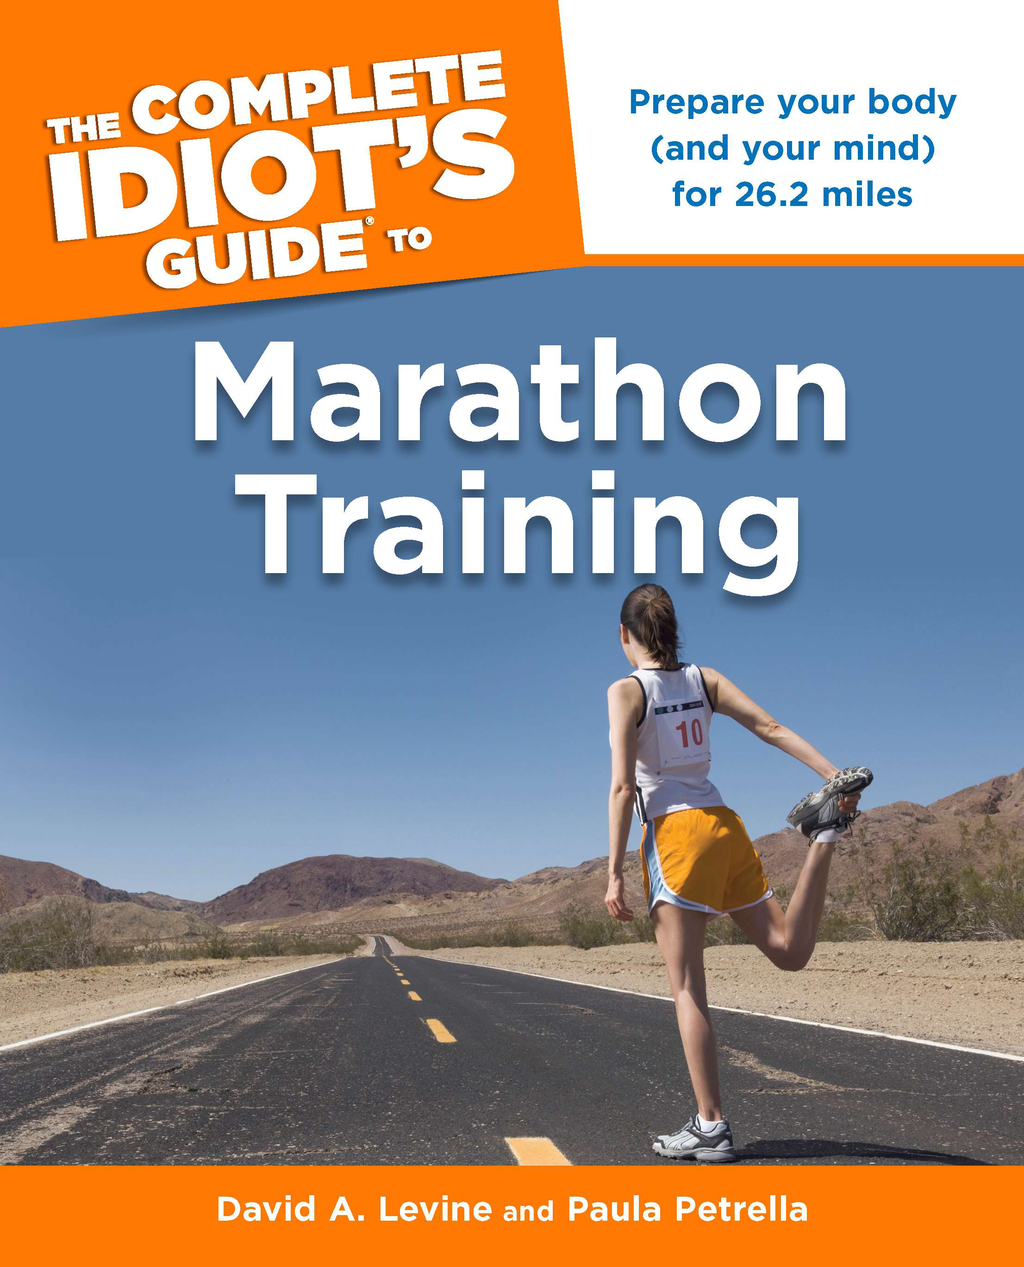 The Complete Idiot's Guide to Marathon Training By: David Levine,Paula Petrella